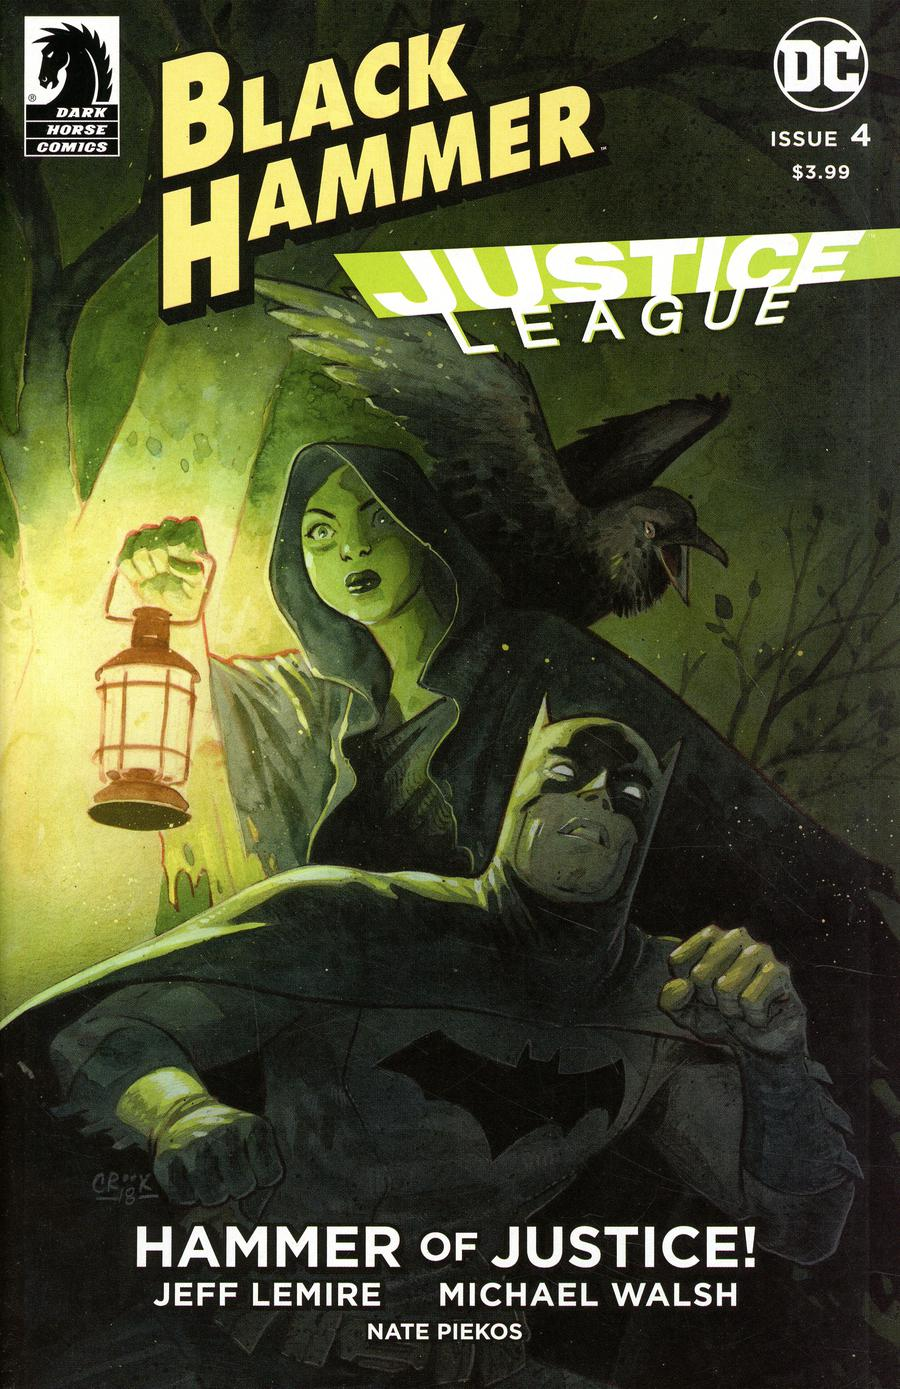 Black Hammer Justice League Hammer Of Justice #4 Cover E Variant Tyler Crook Cover